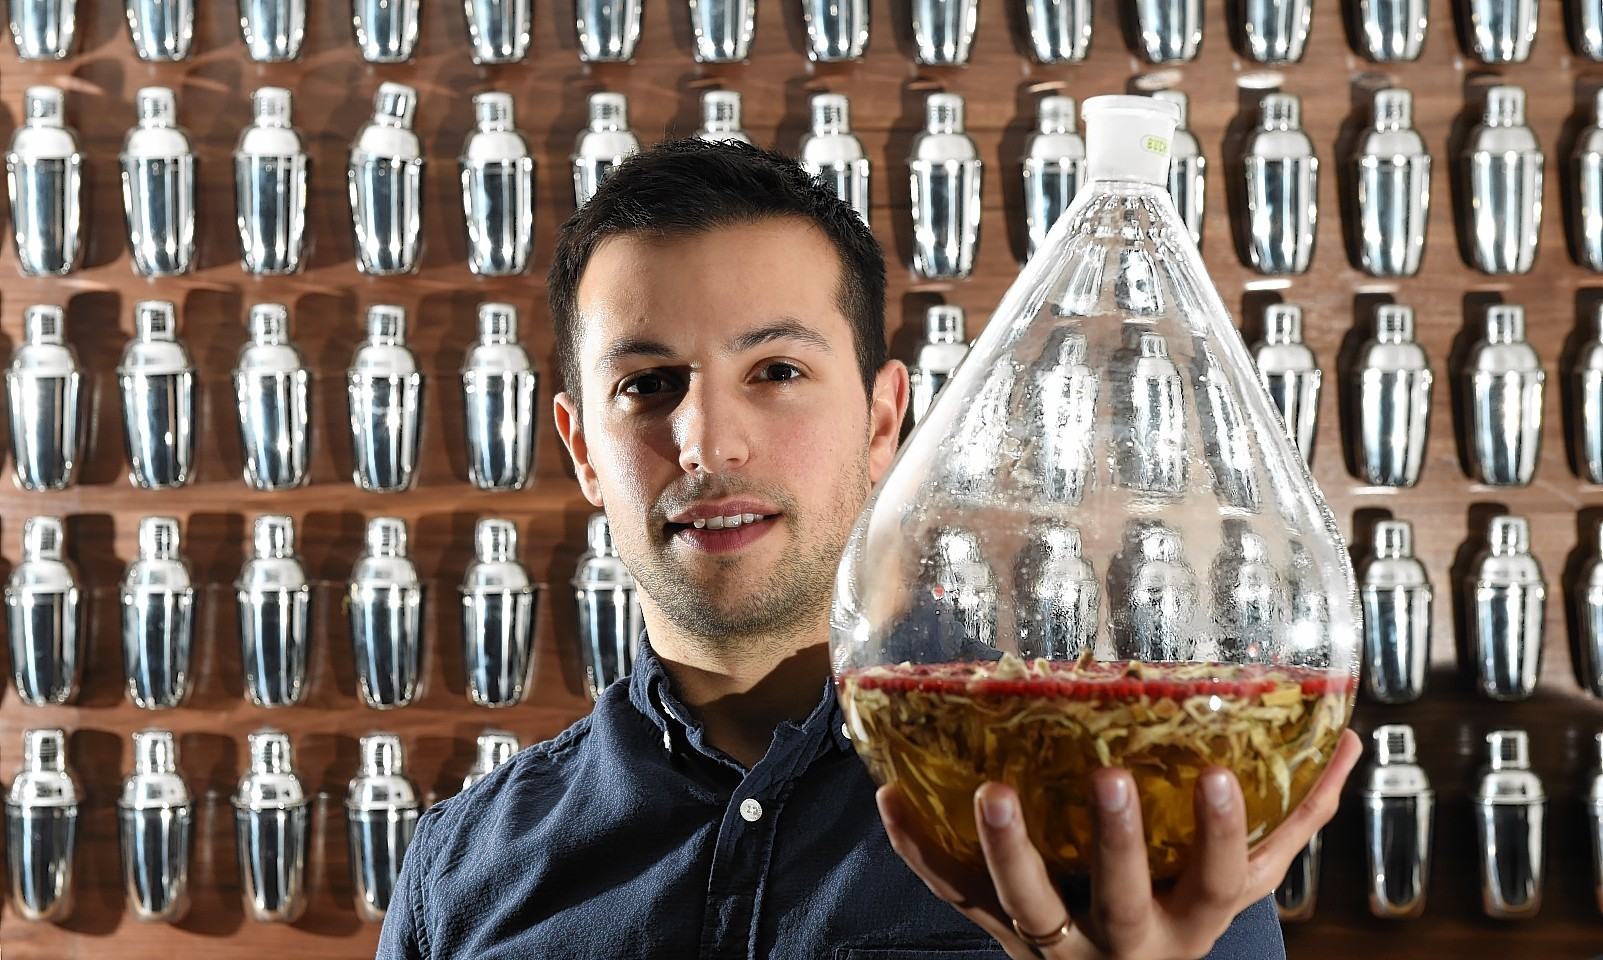 Ben Iravani, owner of the Orchid Bar, who is ready to launch the first gin distilled in Aberdeen for 100 years. Picture by Kevin Emslie